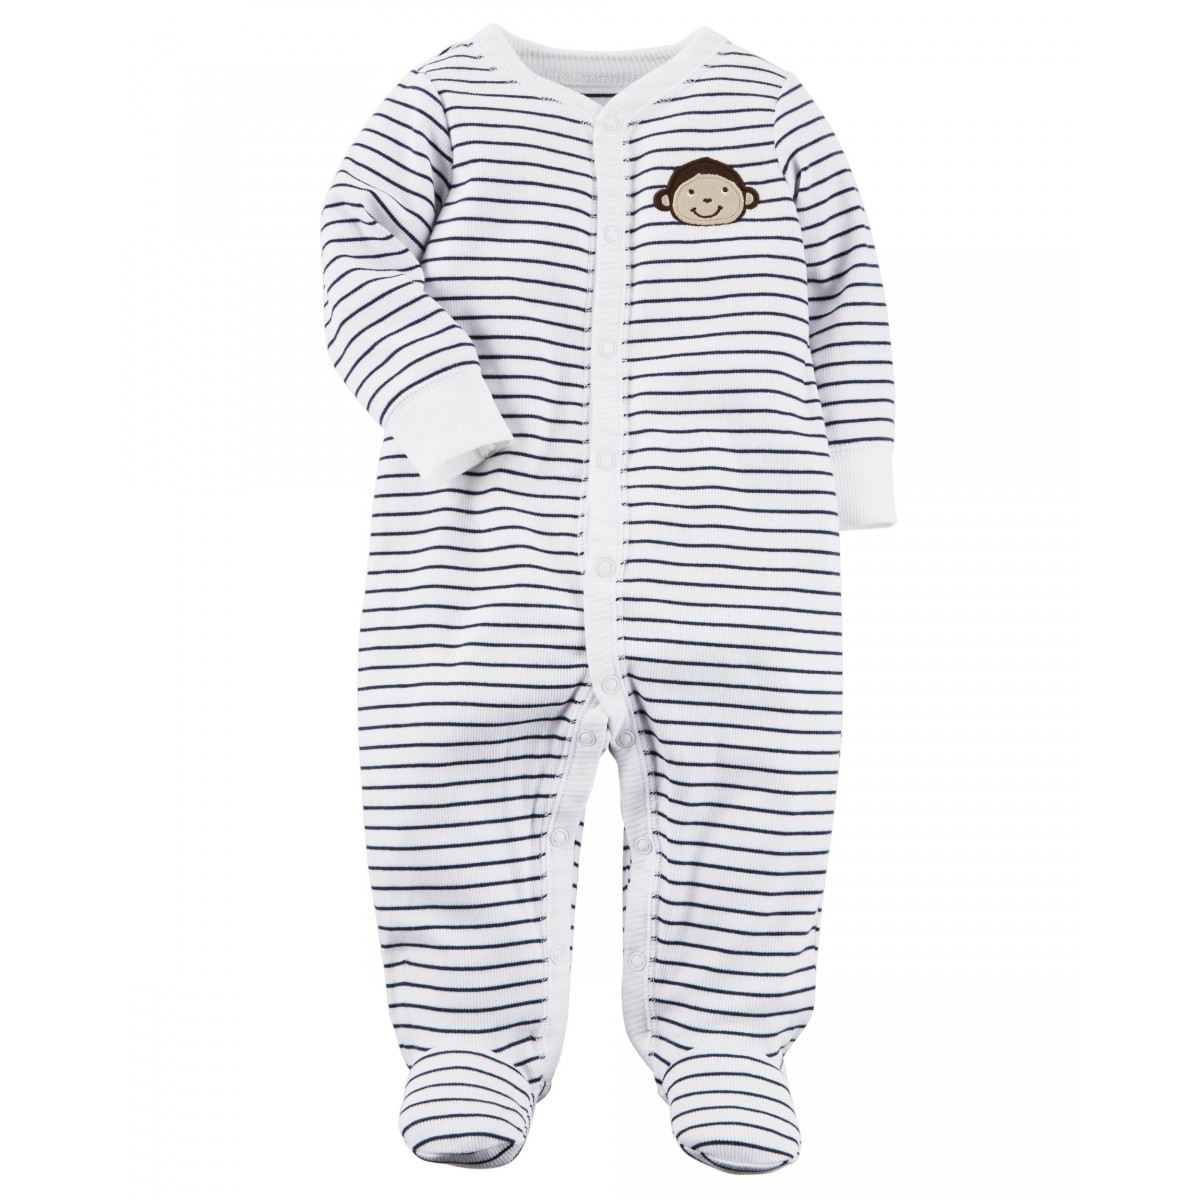 Carter's Monkey Snap-Up Cotton Sleep & Play